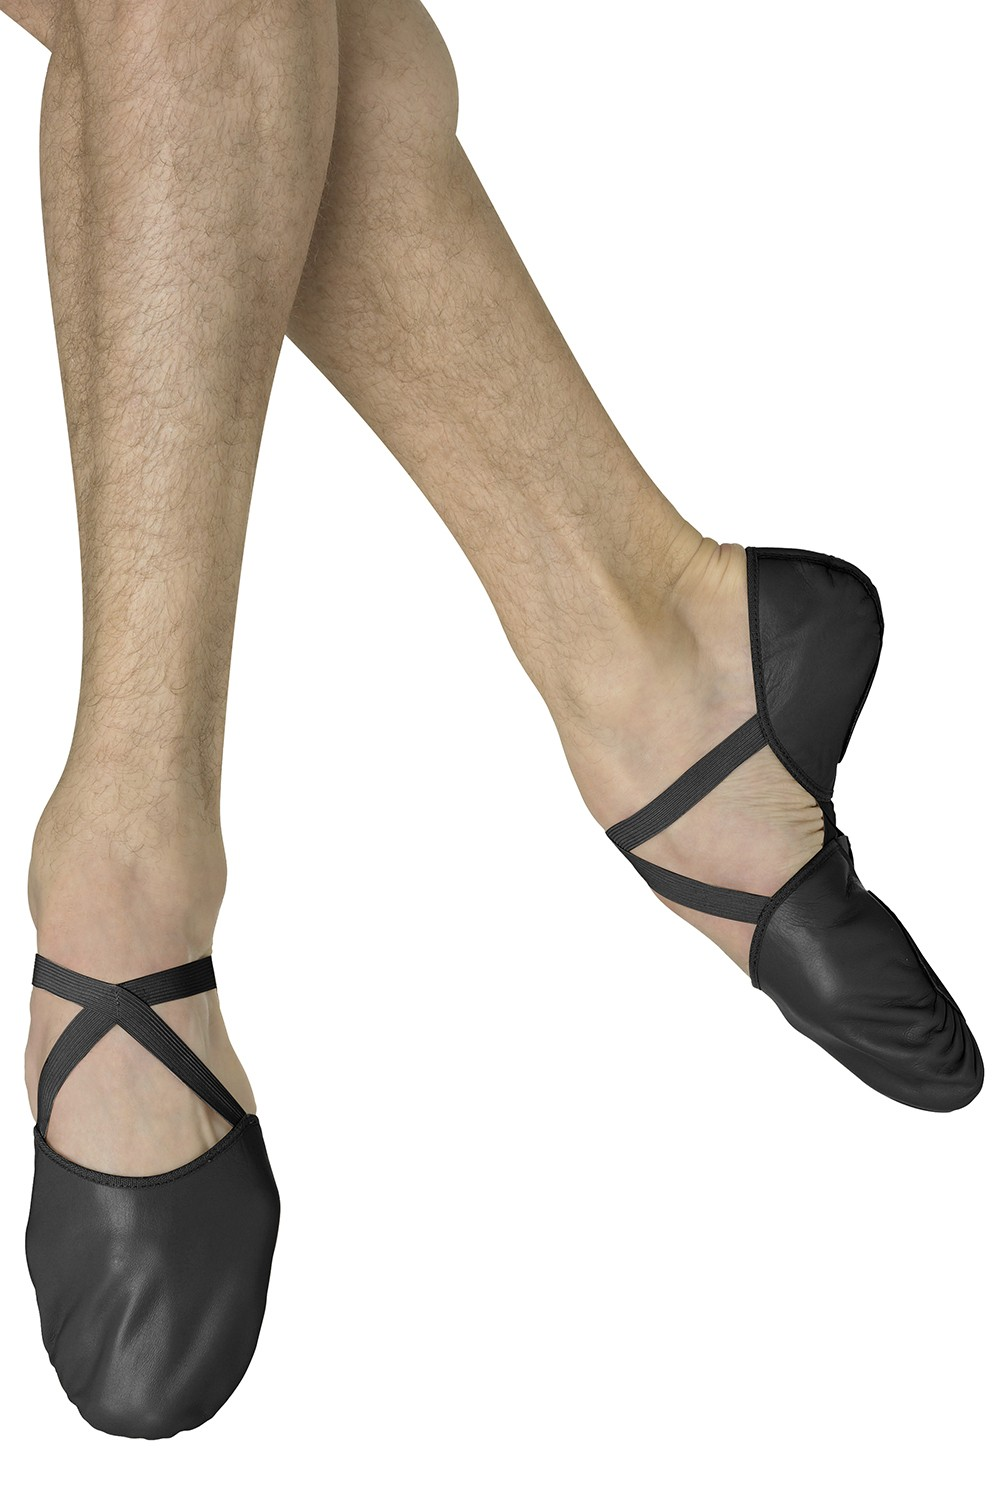 Elastosplit X Leather - Mens Men's Ballet Shoes